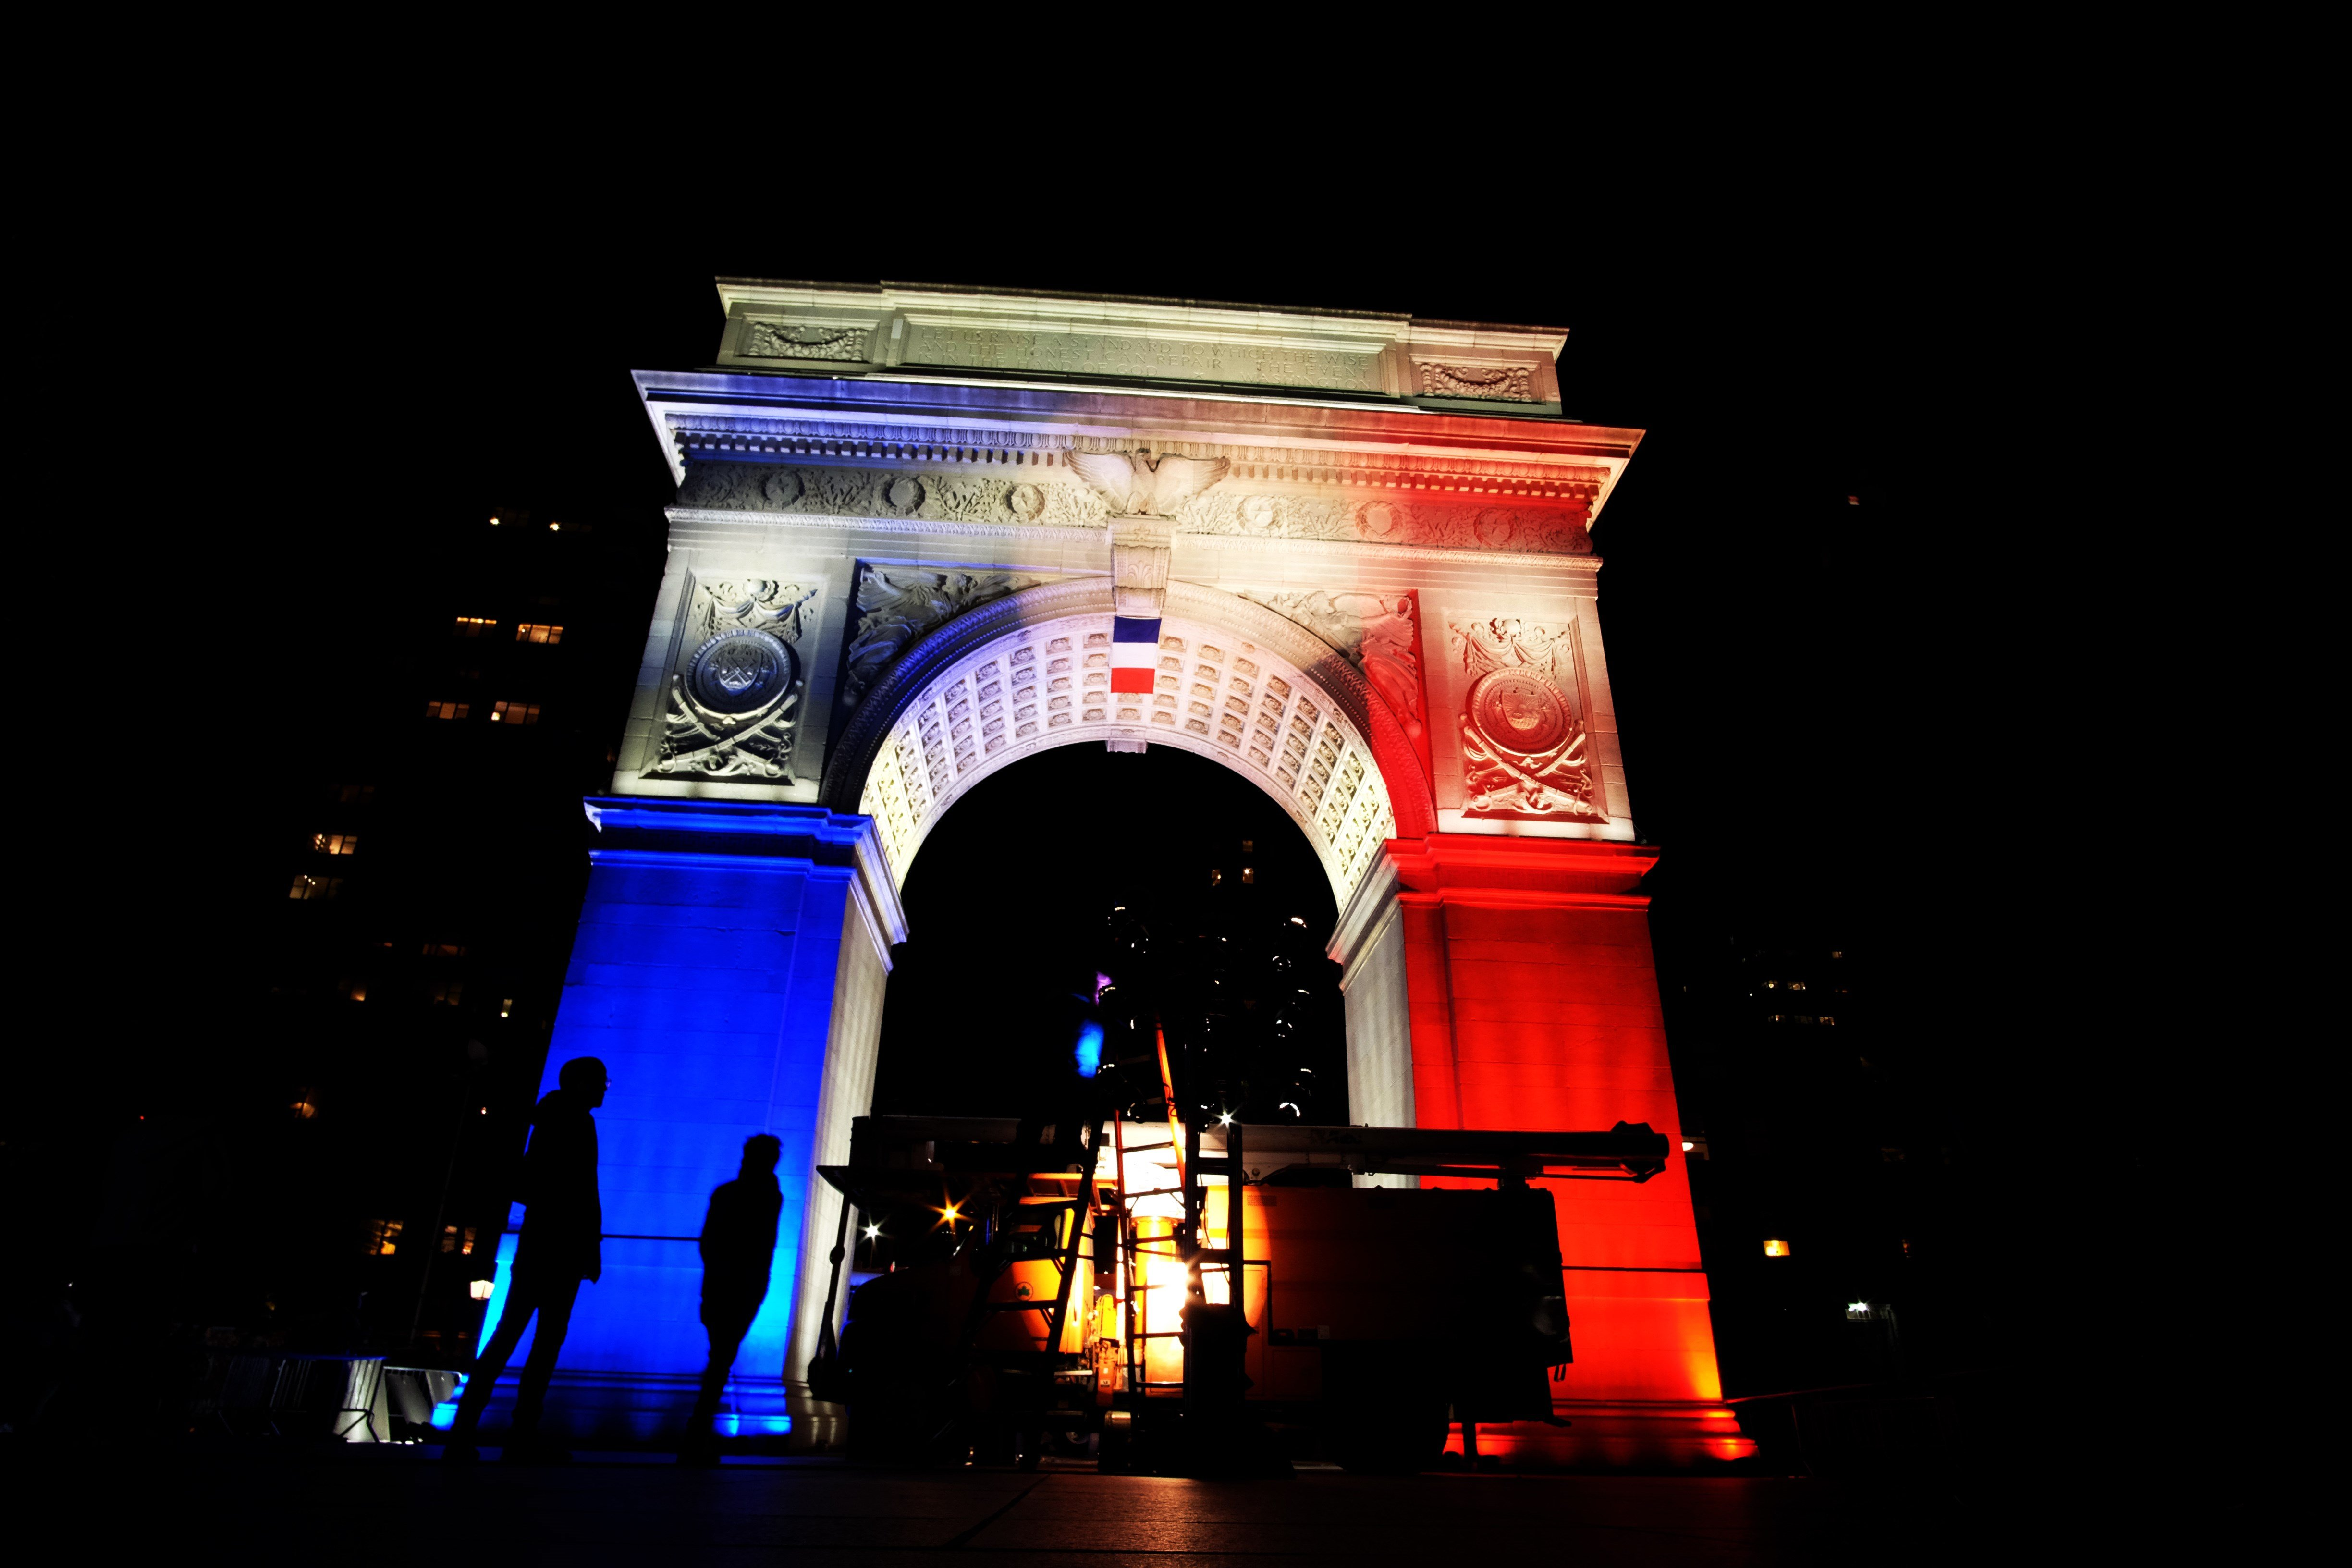 The Washington Square Park arch in New York City is lit with the French national colors in solidarity with the citizens of France on Nov. 14, 2015.